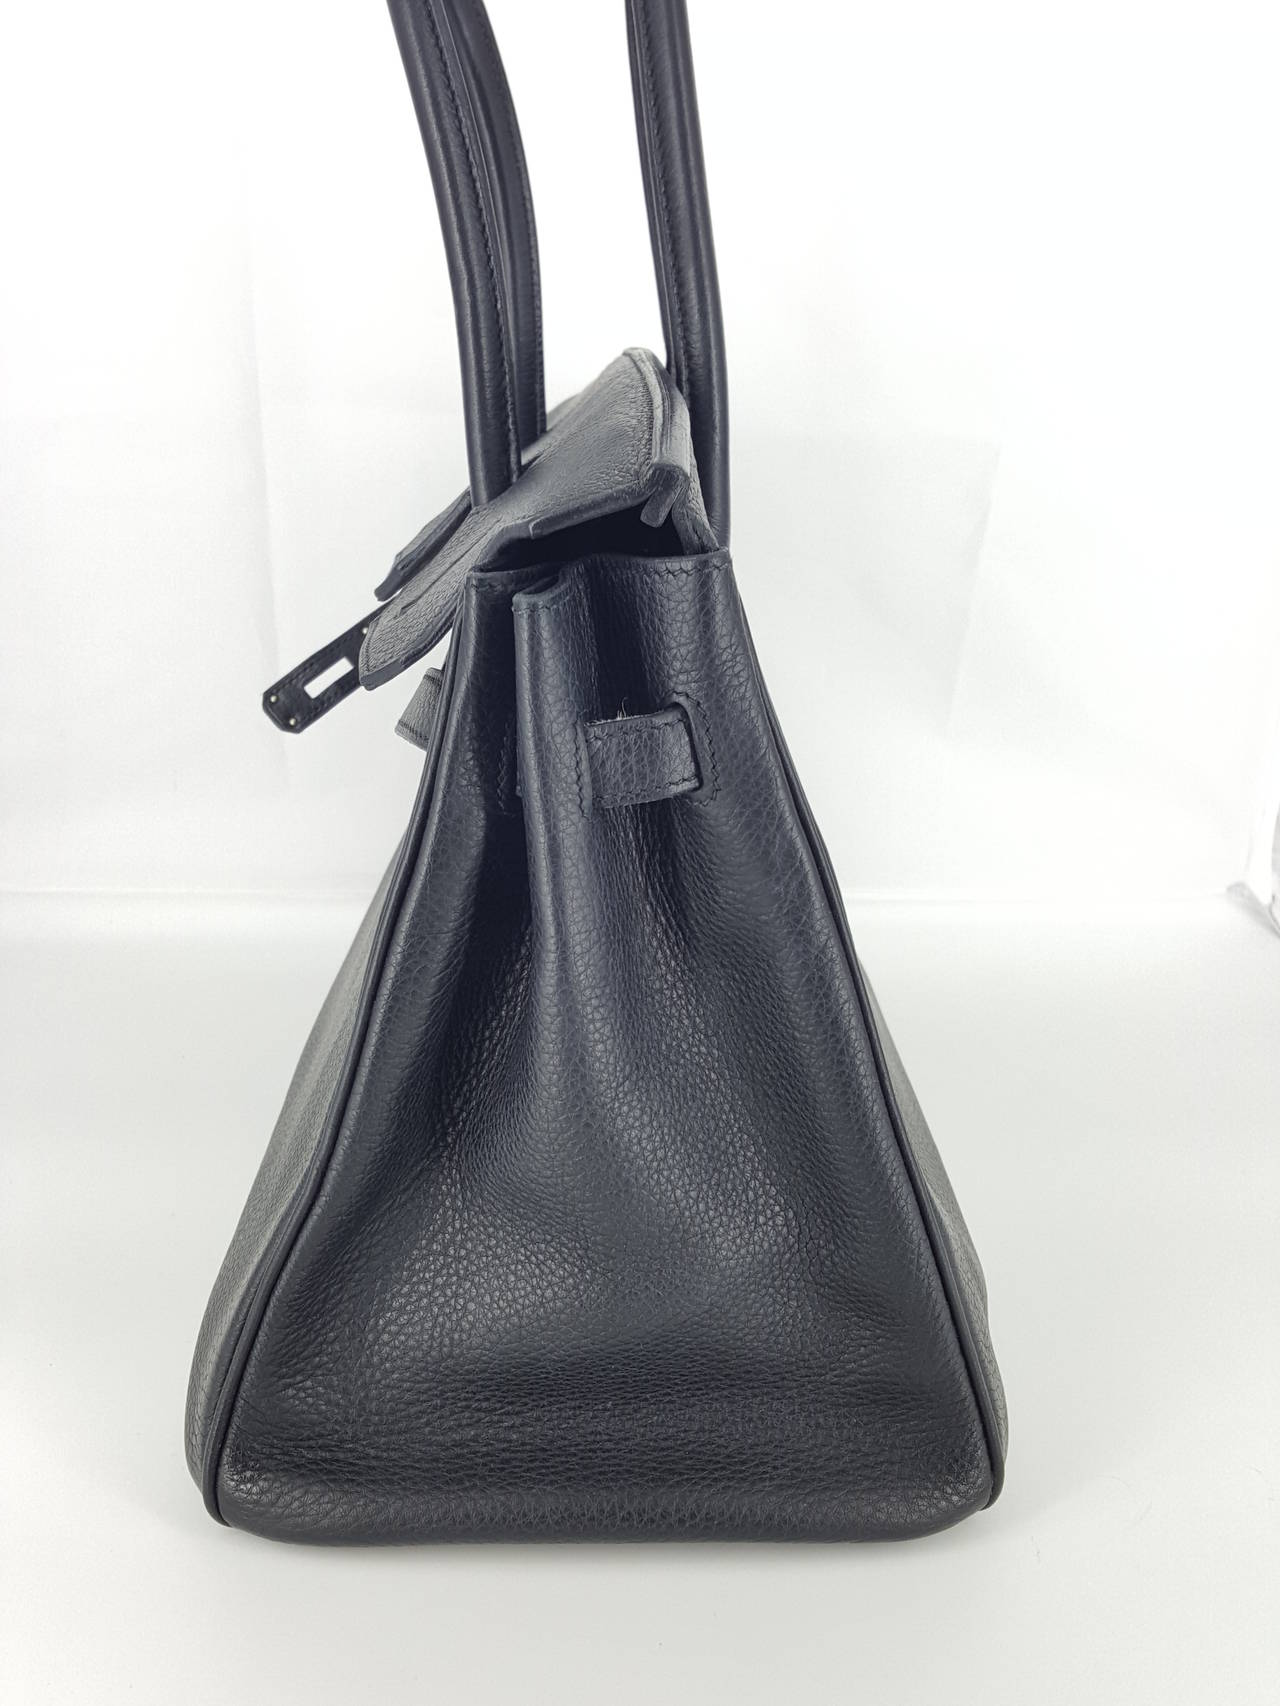 HERMES Birkin 35 CM In Black Clemence Leather With Palladium Hardware. In Good Condition For Sale In Delray Beach, FL